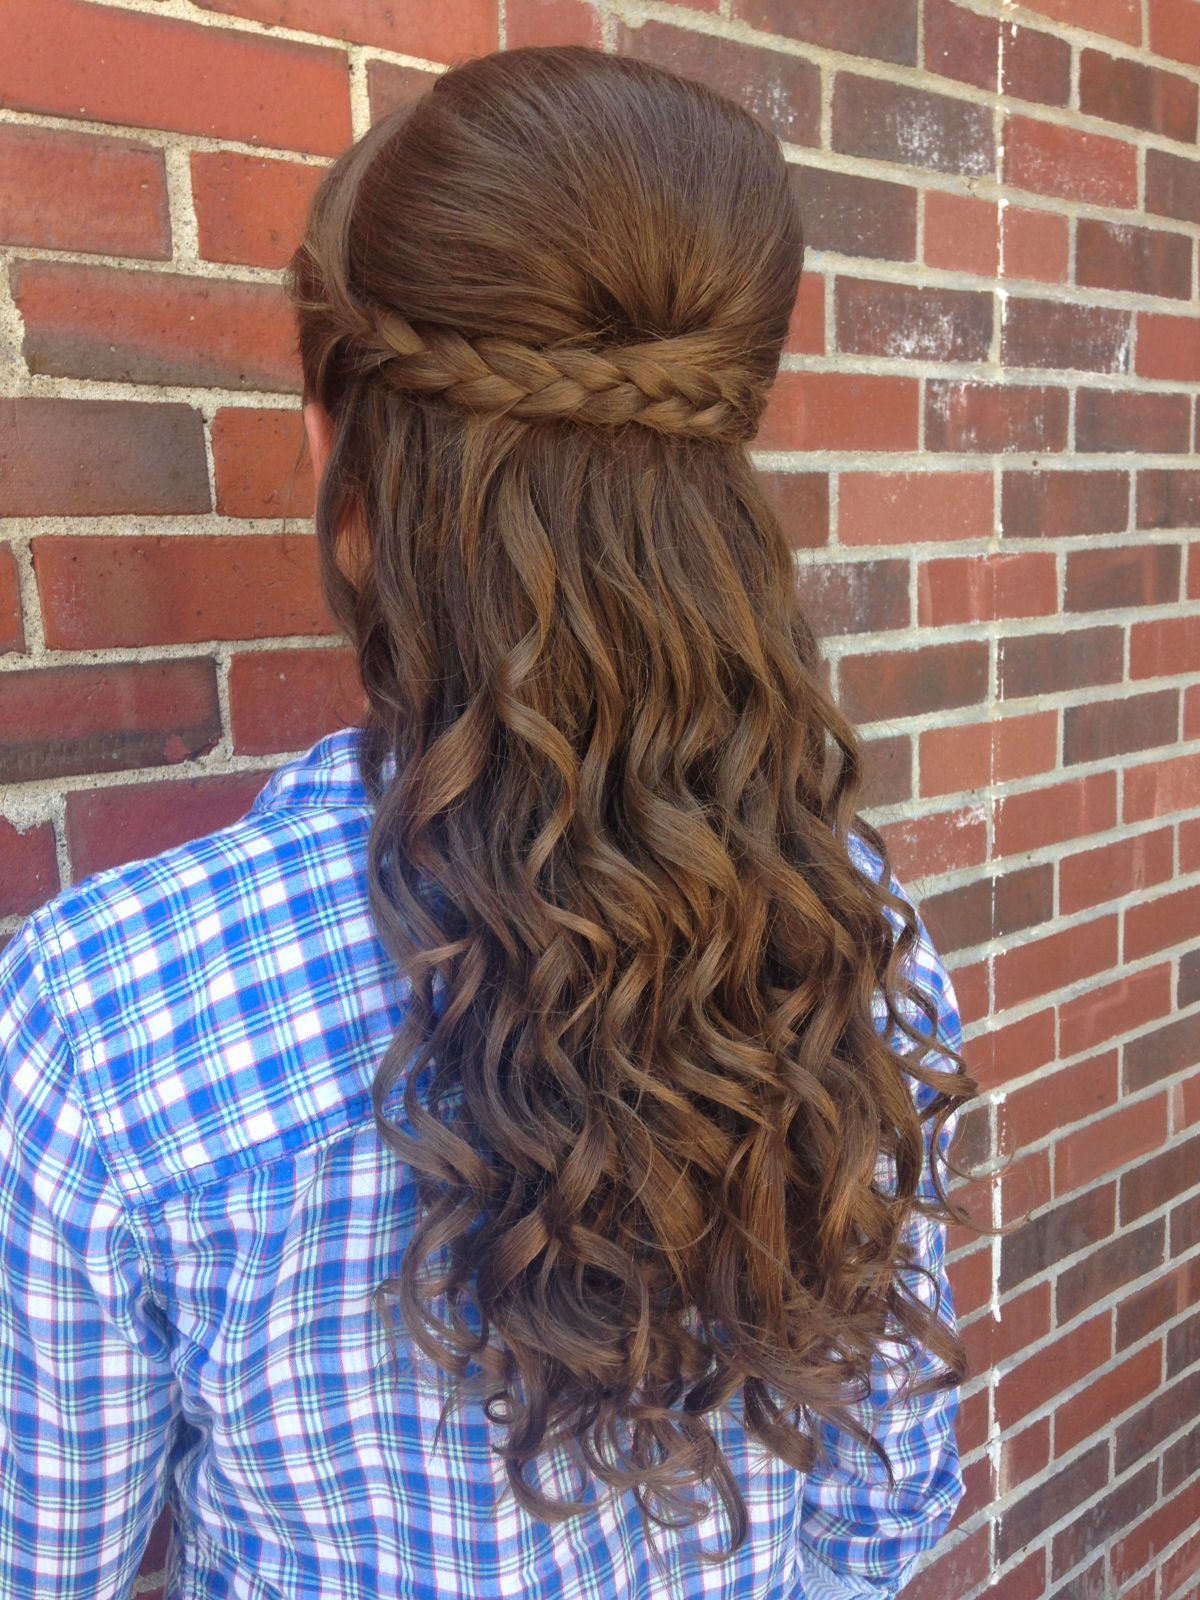 Prom Hair * Half Up Half Down * Curly Braided Bump Romantic Updo Throughout Most Popular Curly Half Updo With Ponytail Braids (View 17 of 20)